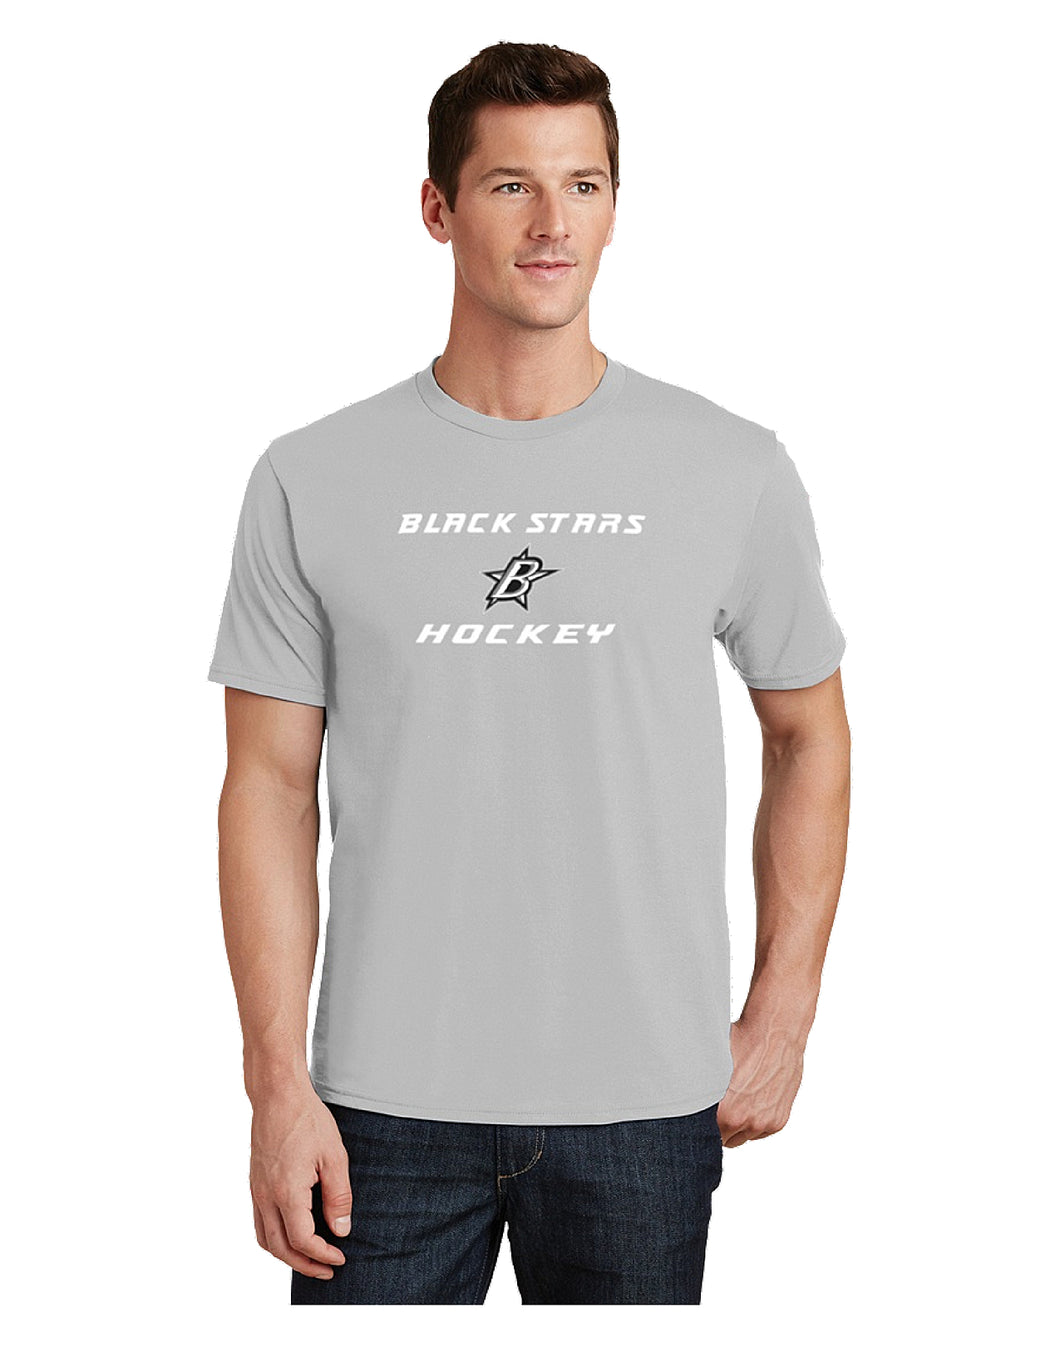 Black Stars Port & Company® Fan Favorite™ Tee Silver with Black Stars Hockey Logo (PC450)